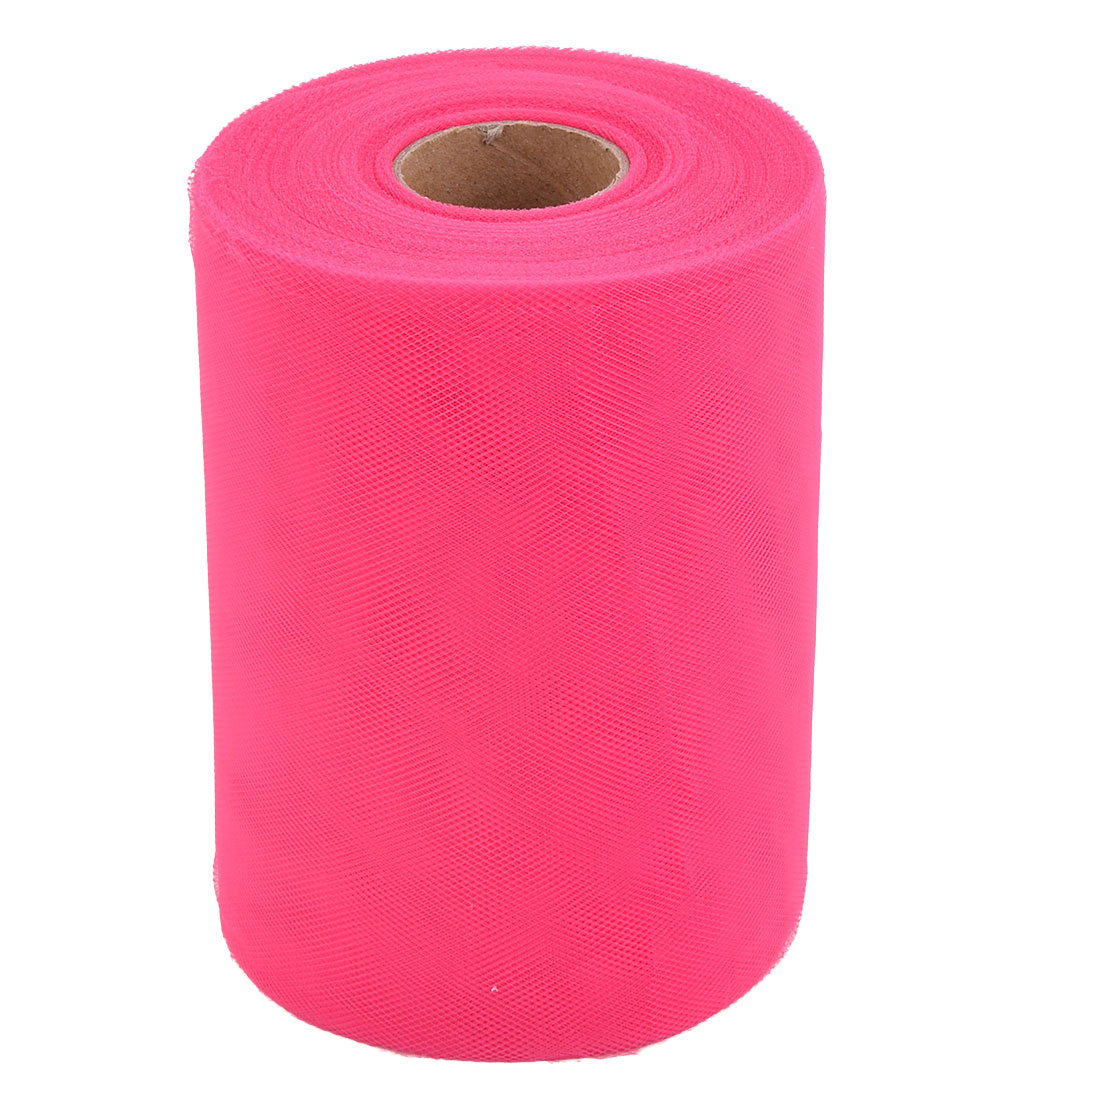 Wedding Polyester DIY Table Chair Bow Adornment Tulle Spool Fuchsia 6 Inch x 100 Yards